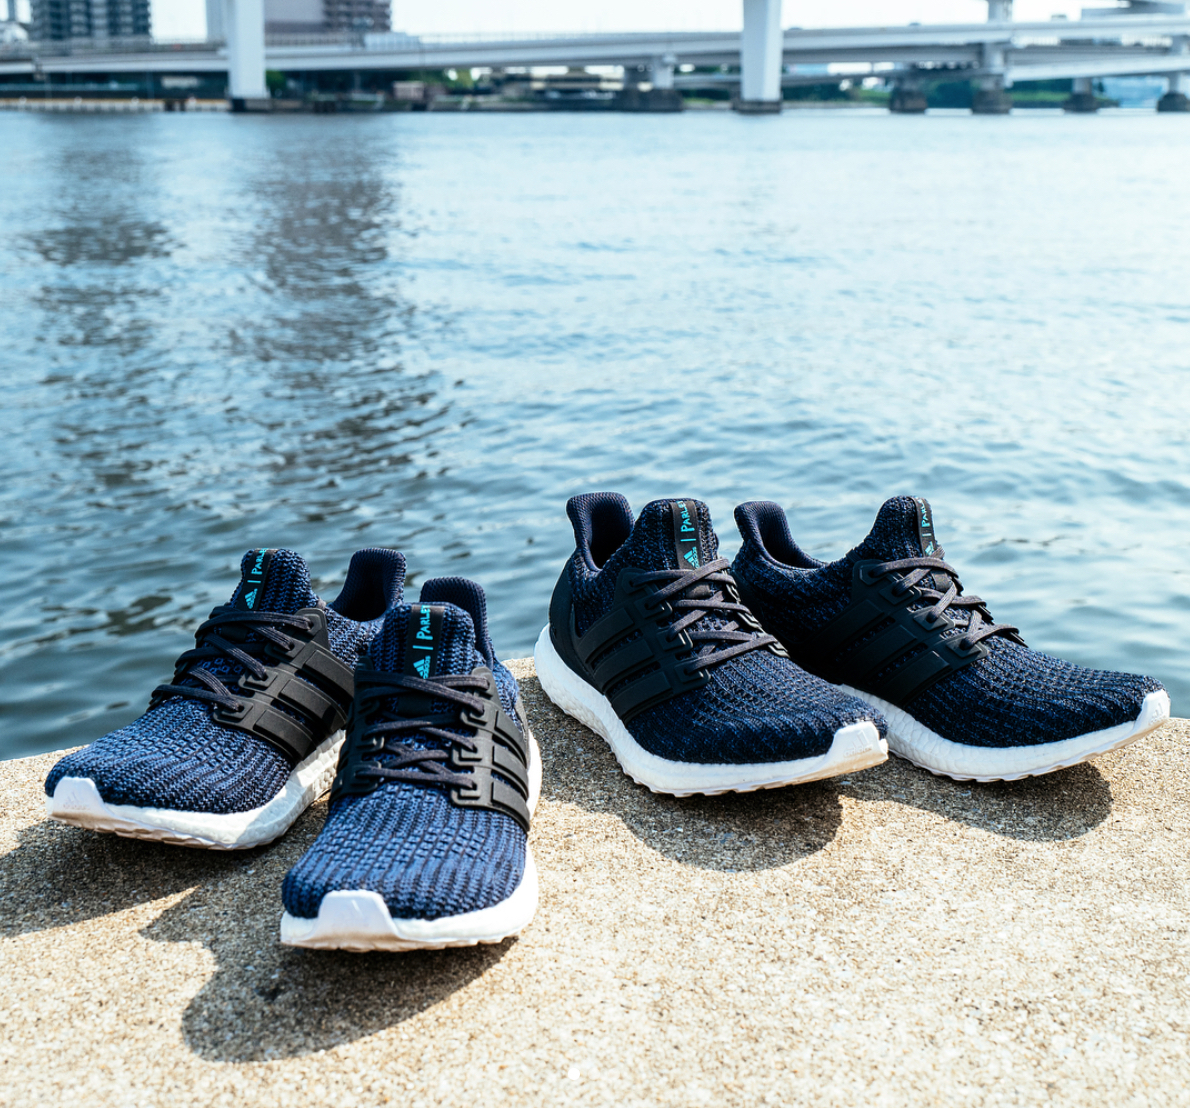 Adidas Introduces Ultra Boost 4.0 Parley in Deep Ocean Blue1